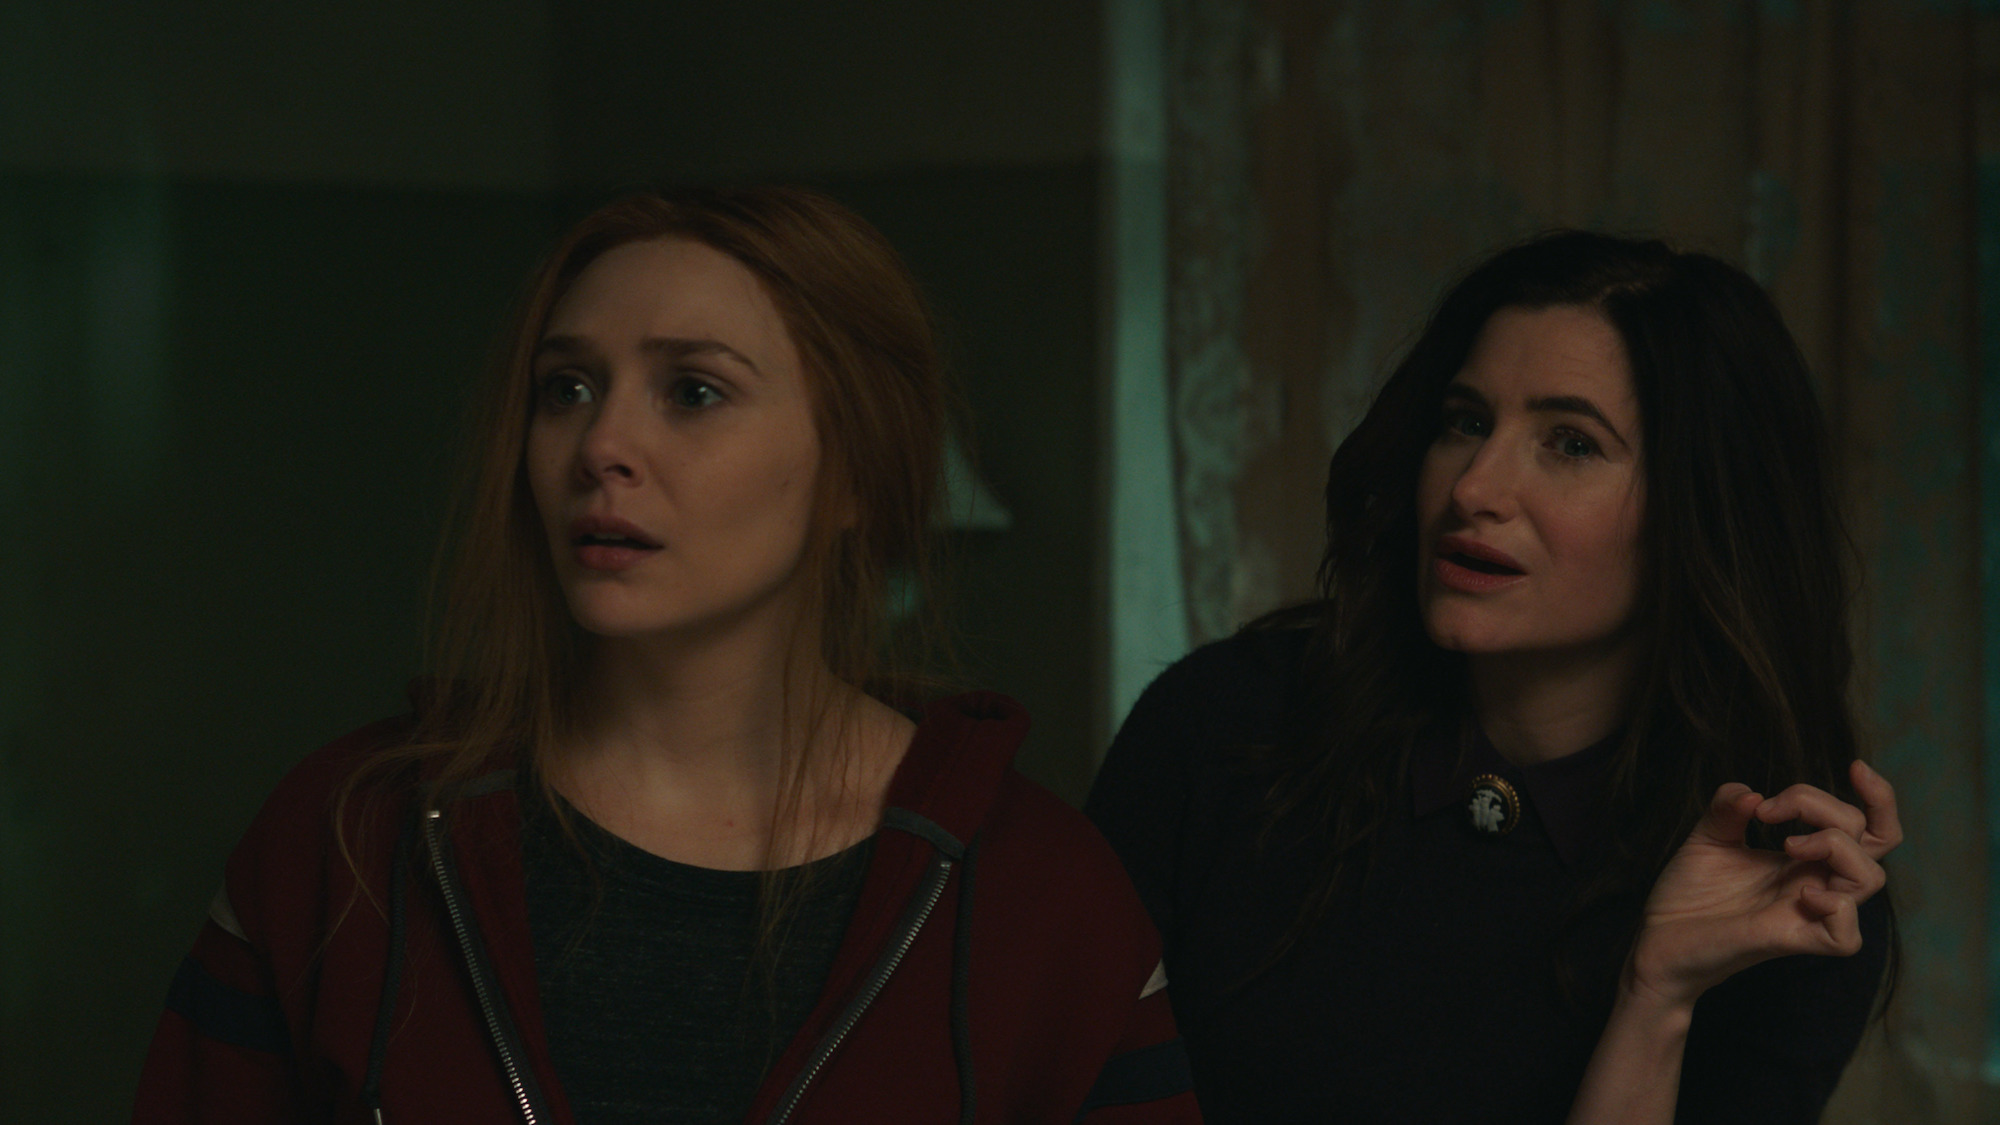 Elizabeth Olsen as Wanda Maximoff and Kathryn Hahn as Agatha Harkness in 'WandaVision